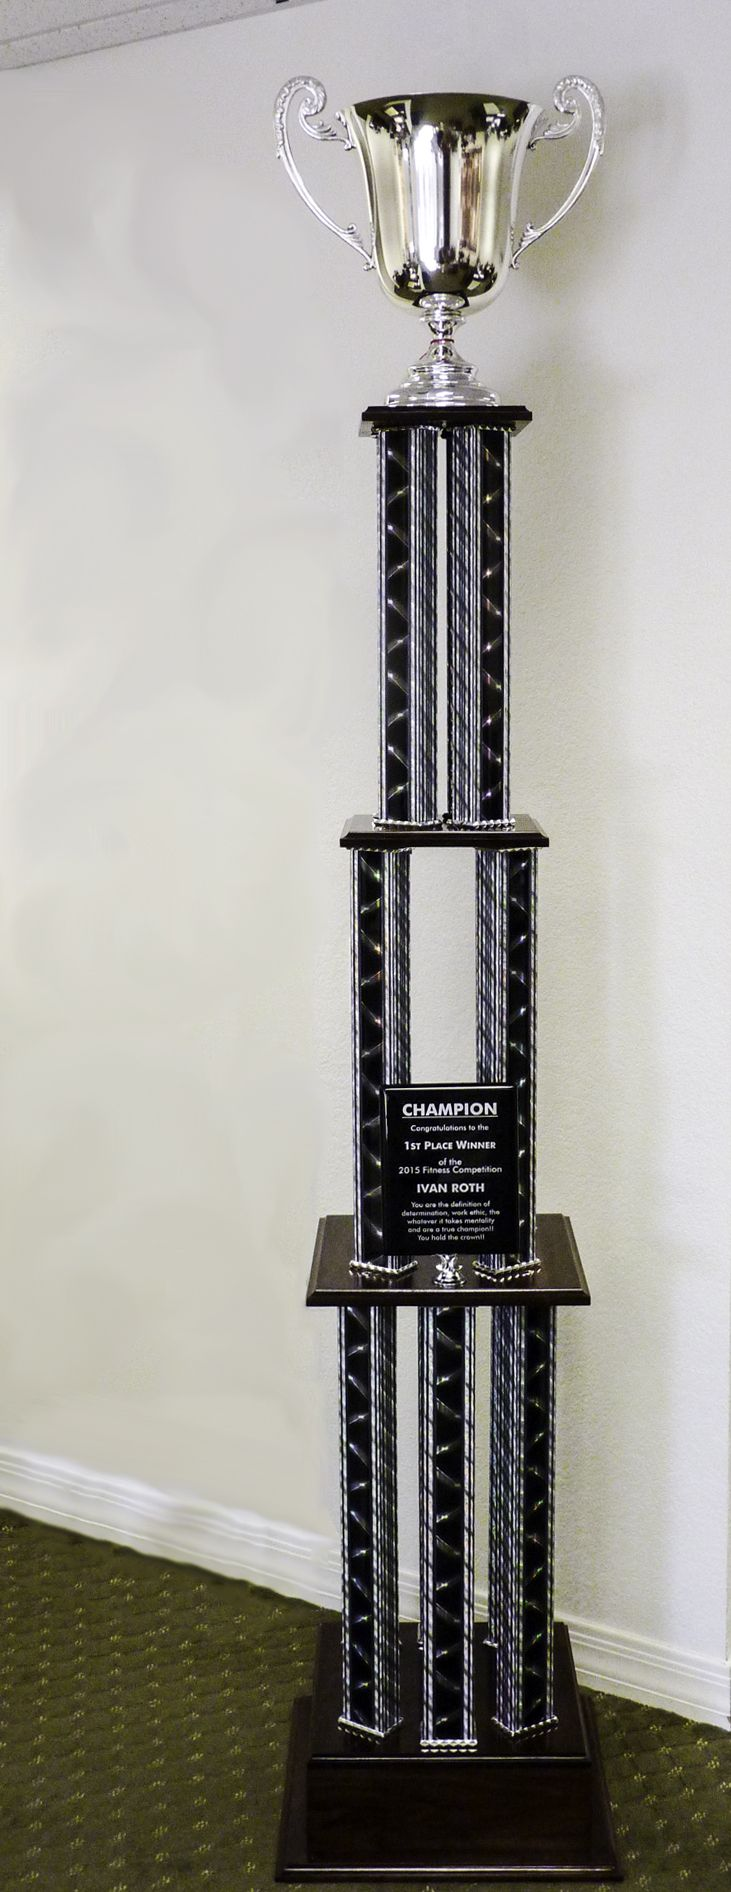 "Need something big? We mean really big! Check out this massive 7 foot tall trophy we made for one of our creative clients! This is a custom 4 tier trophy with black wooden bases, black laser column, an 8"" x 10"" ebony piano plaque. The trophy is topped with a 14"" tall silver loving cup.  #trophy #cup #award #creative #biggerisbetter #trophies #plaque #champion #arizona #tempe #phoenix #smallbusiness #winning"